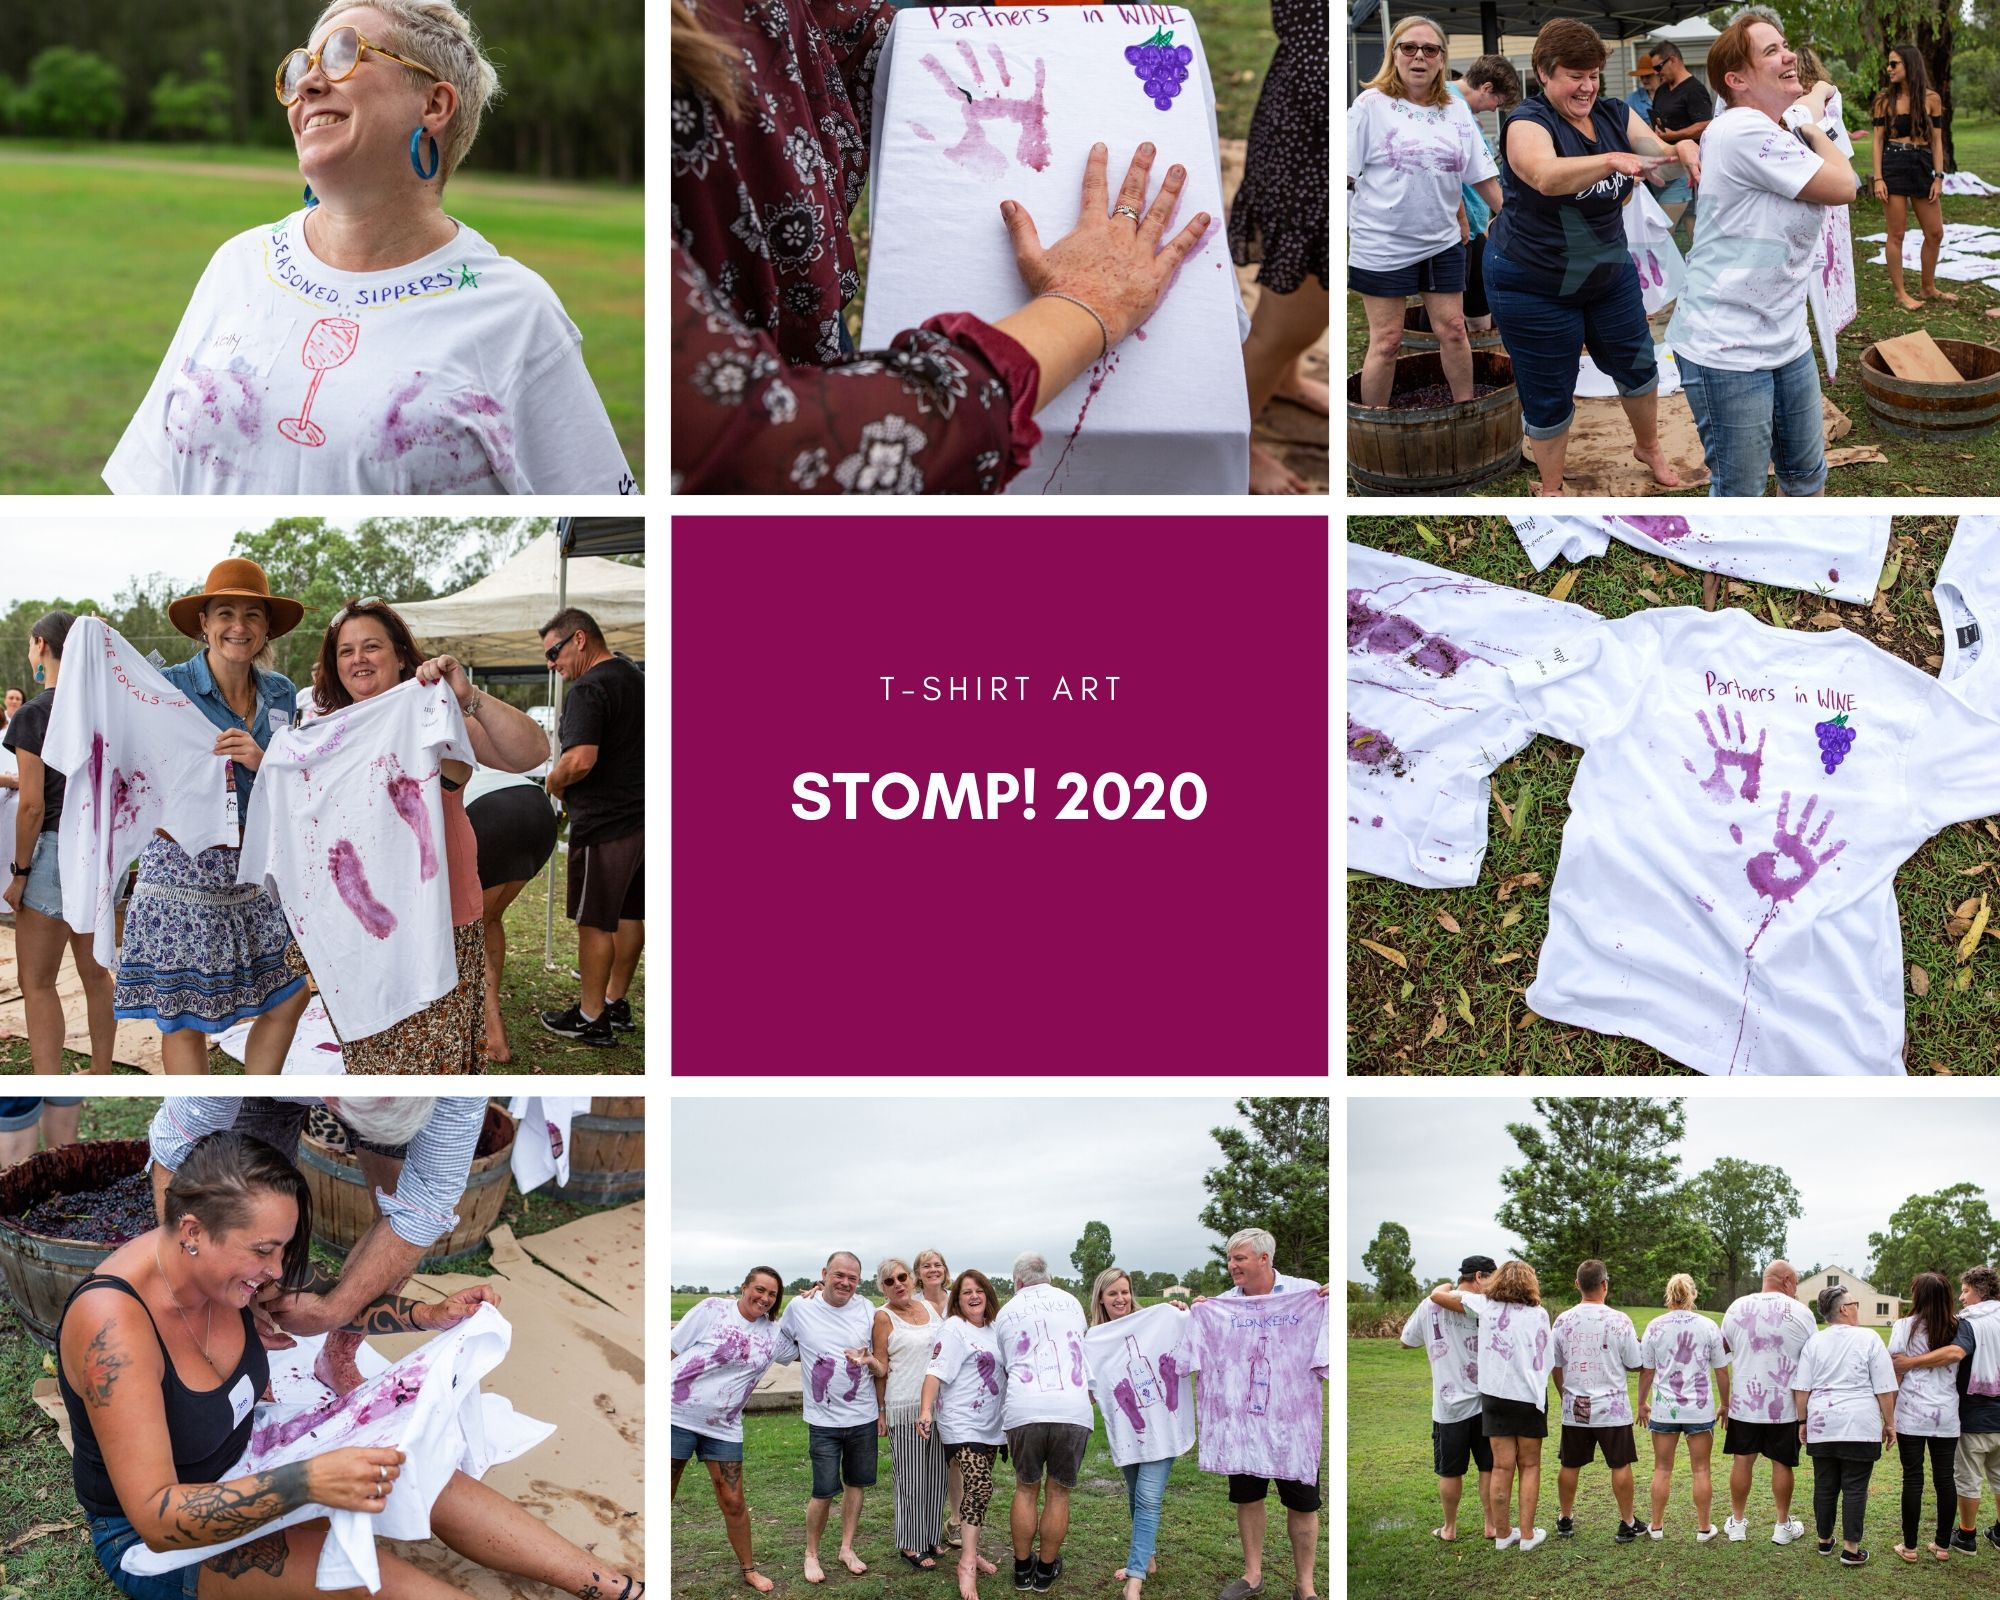 Stomp! 2020 T-shirt Art